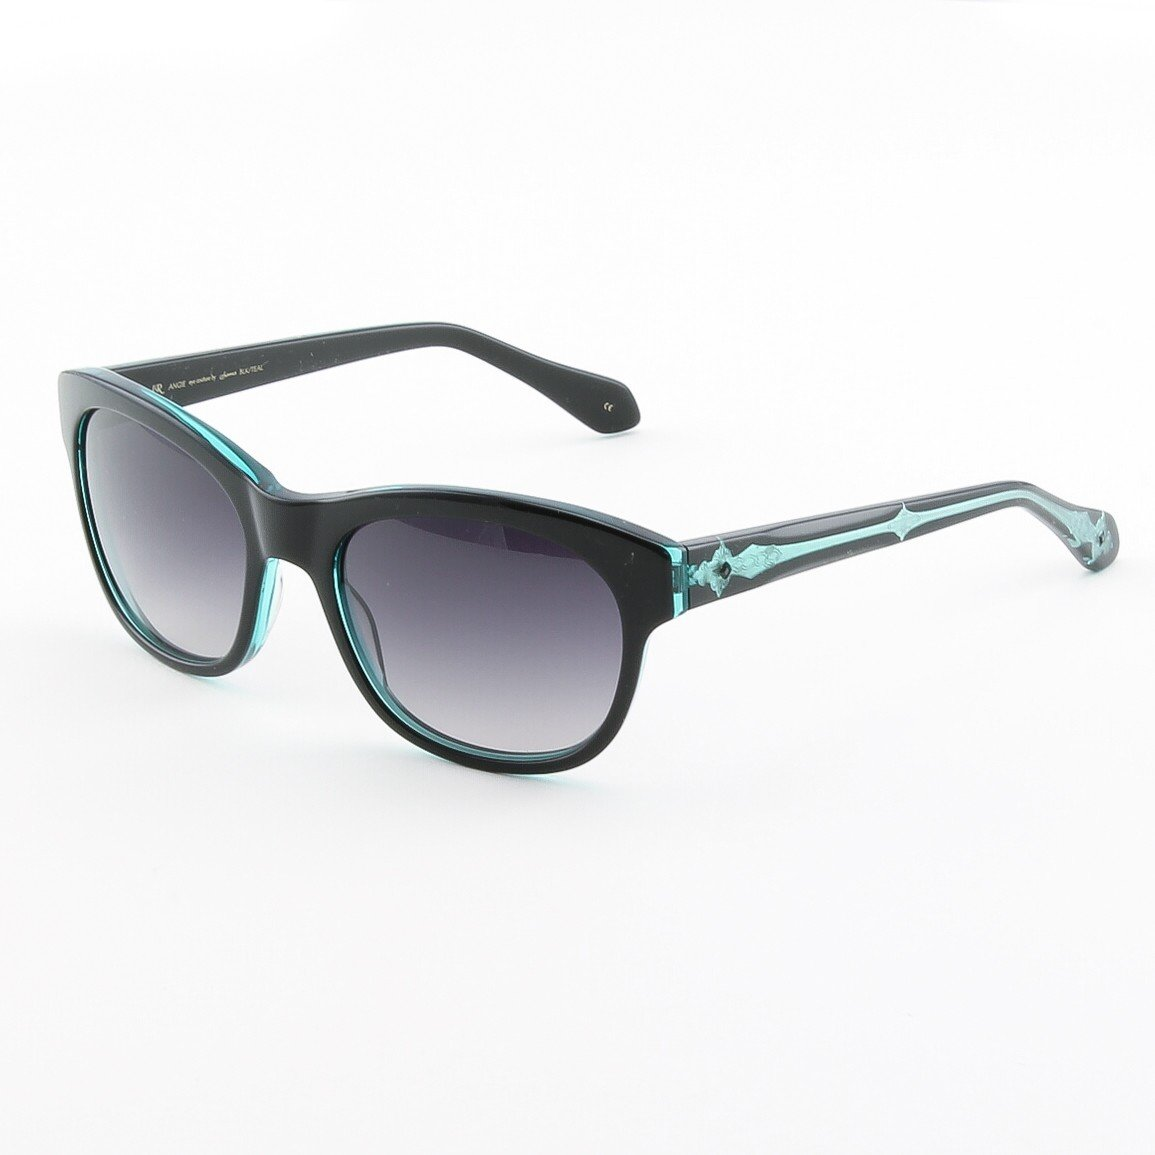 Loree Rodkin Angie Sunglasses Black and Teal w/ Rose Gradient Lenses and Swarovski Crystals